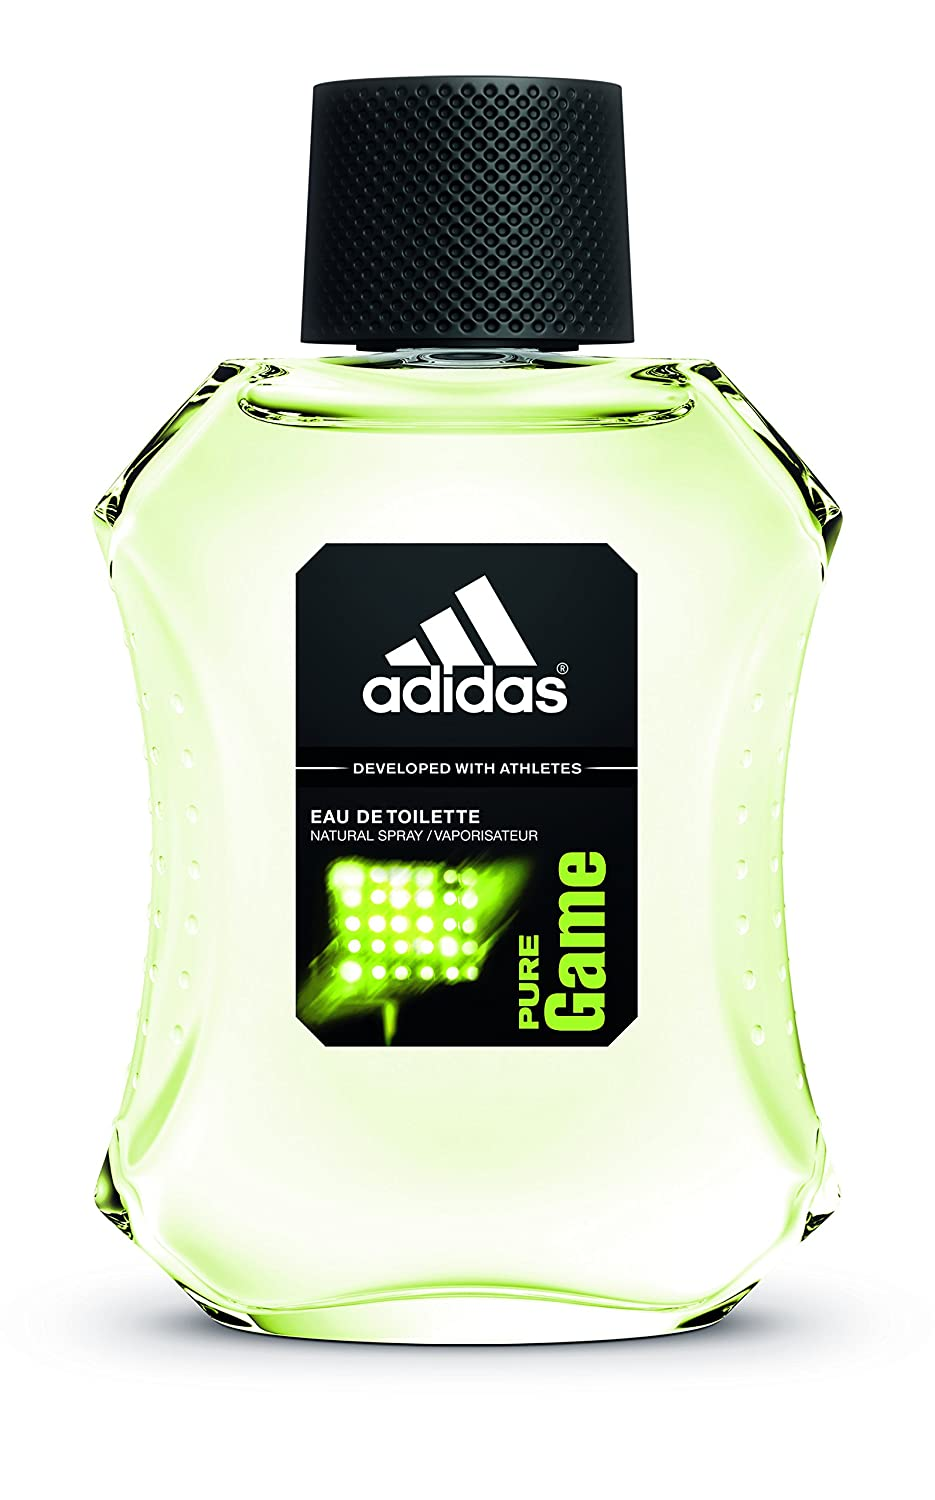 Adidas Pure Game Body Spray, Shower Gel and Eau De Toilette Trio, 50 ml Coty 31229336000